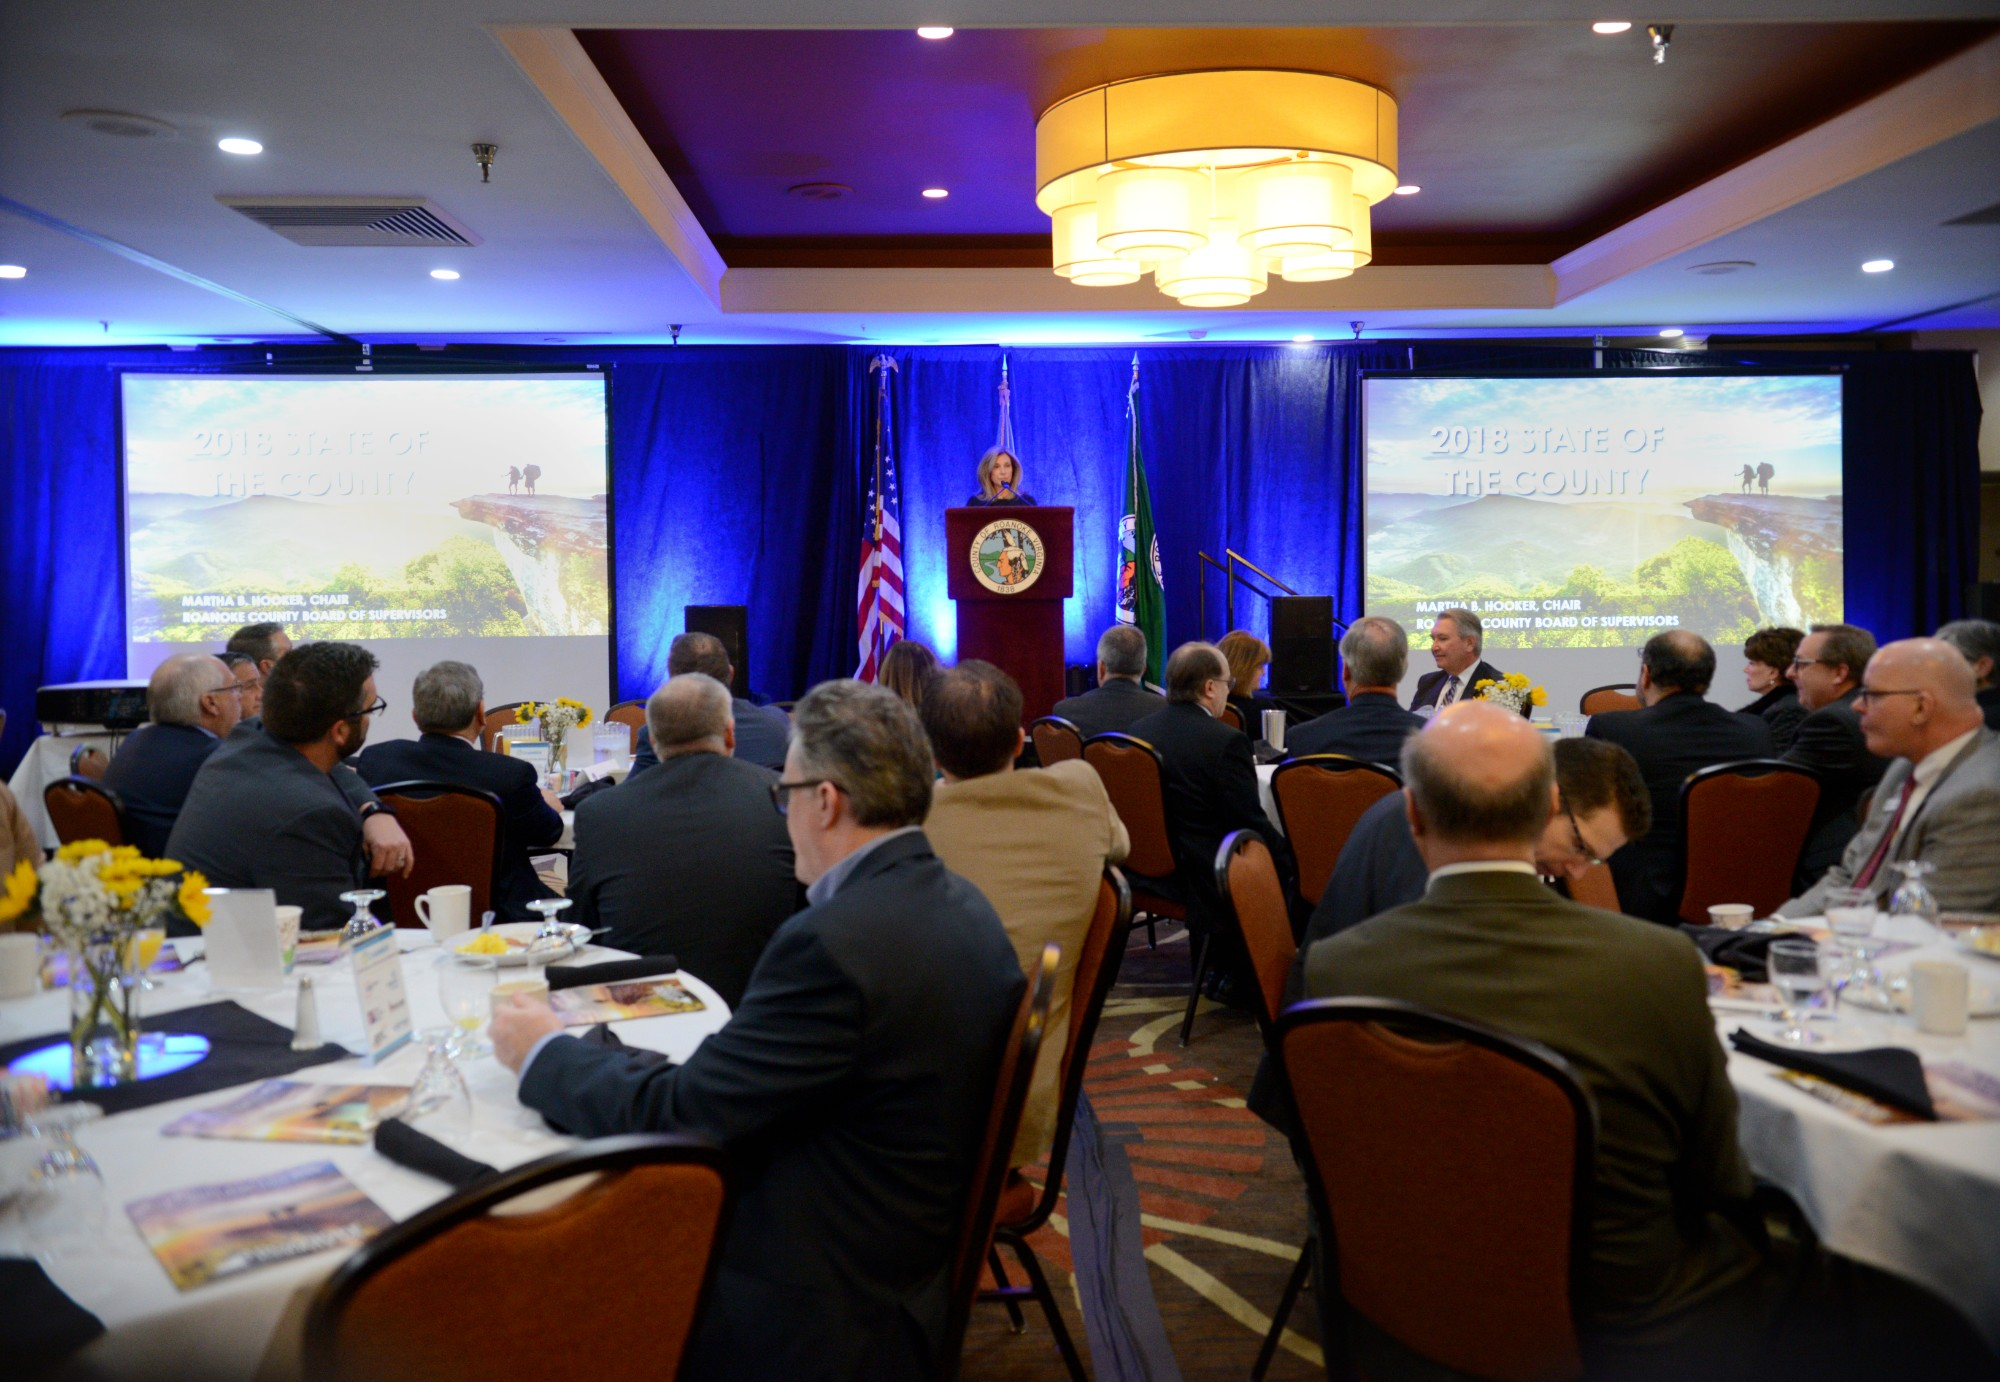 State of the County 50_1